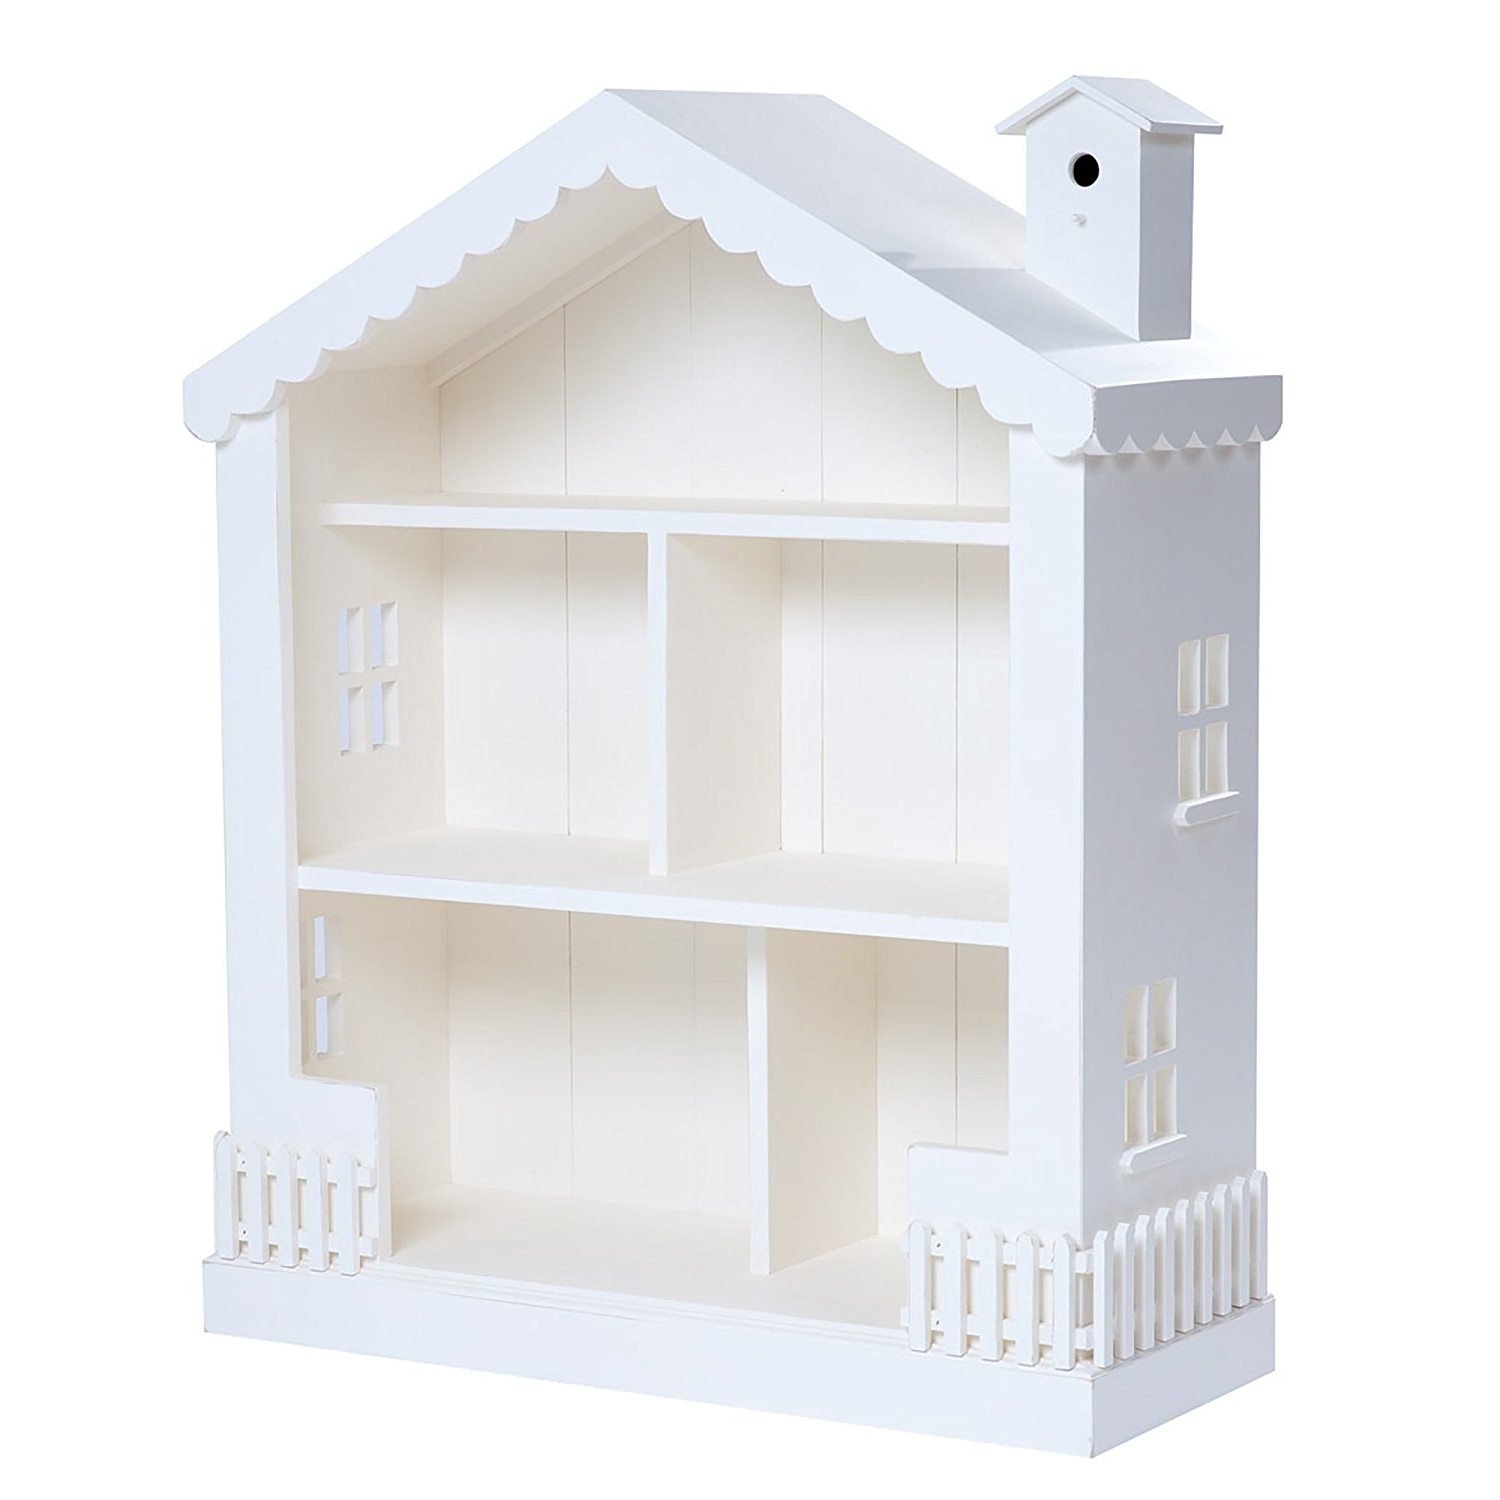 Amazon: Alice Dollhouse Bookcase Snow: Kitchen & Dining In Trendy Dollhouse Bookcases (View 2 of 15)